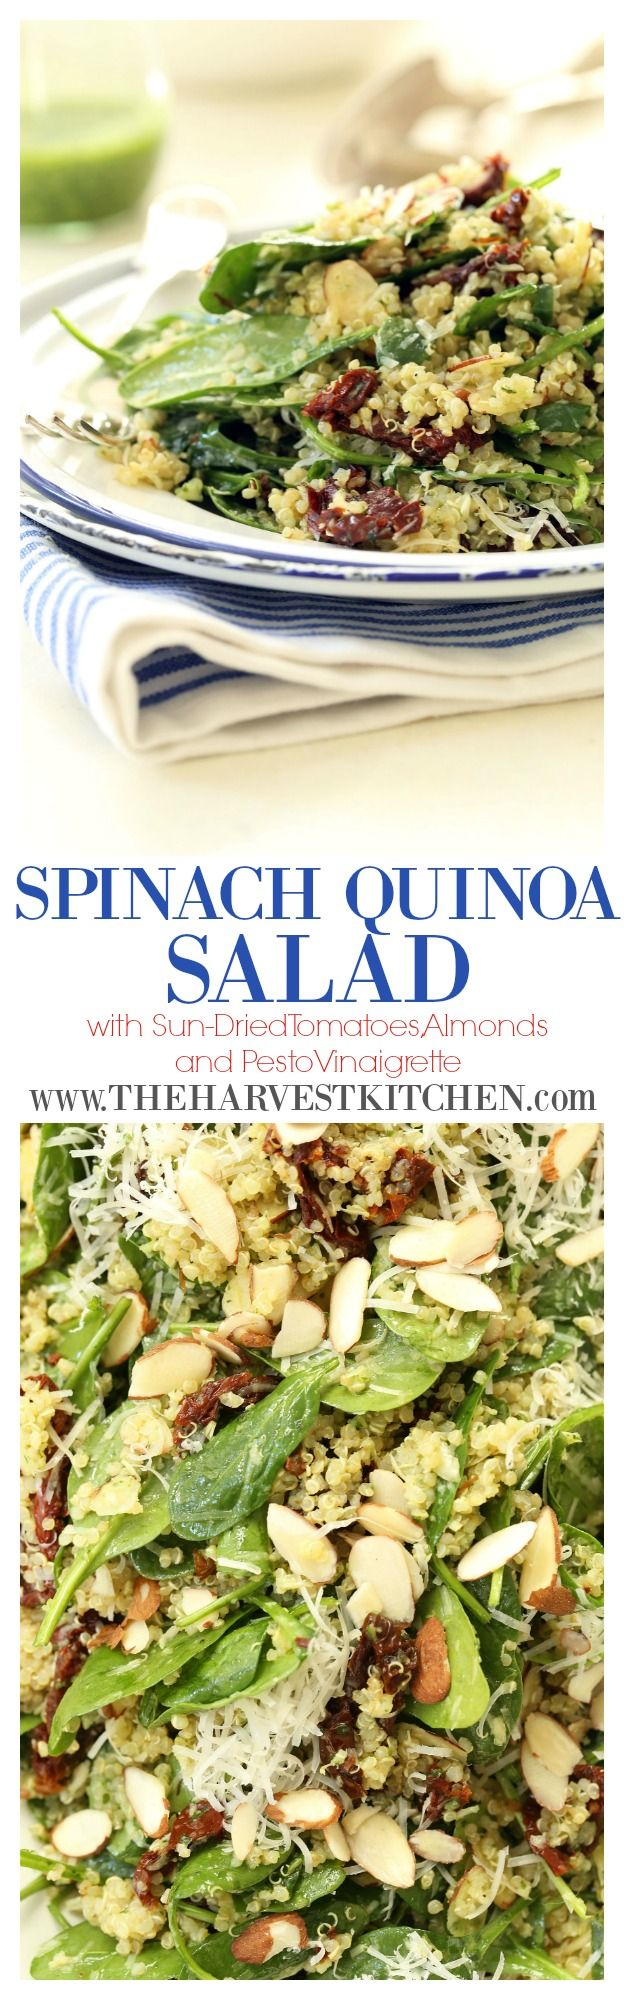 There is so much to love about this Spinach Quinoa Salad (with sun-dried tomatoes and almonds all tossed in a light pesto vinaigrette)! It's loaded with flavor and nutritional perks (protein & iron), and it makes a fabulous and filling lunch or dinner. I've even been known to have it for breakfast! Love!